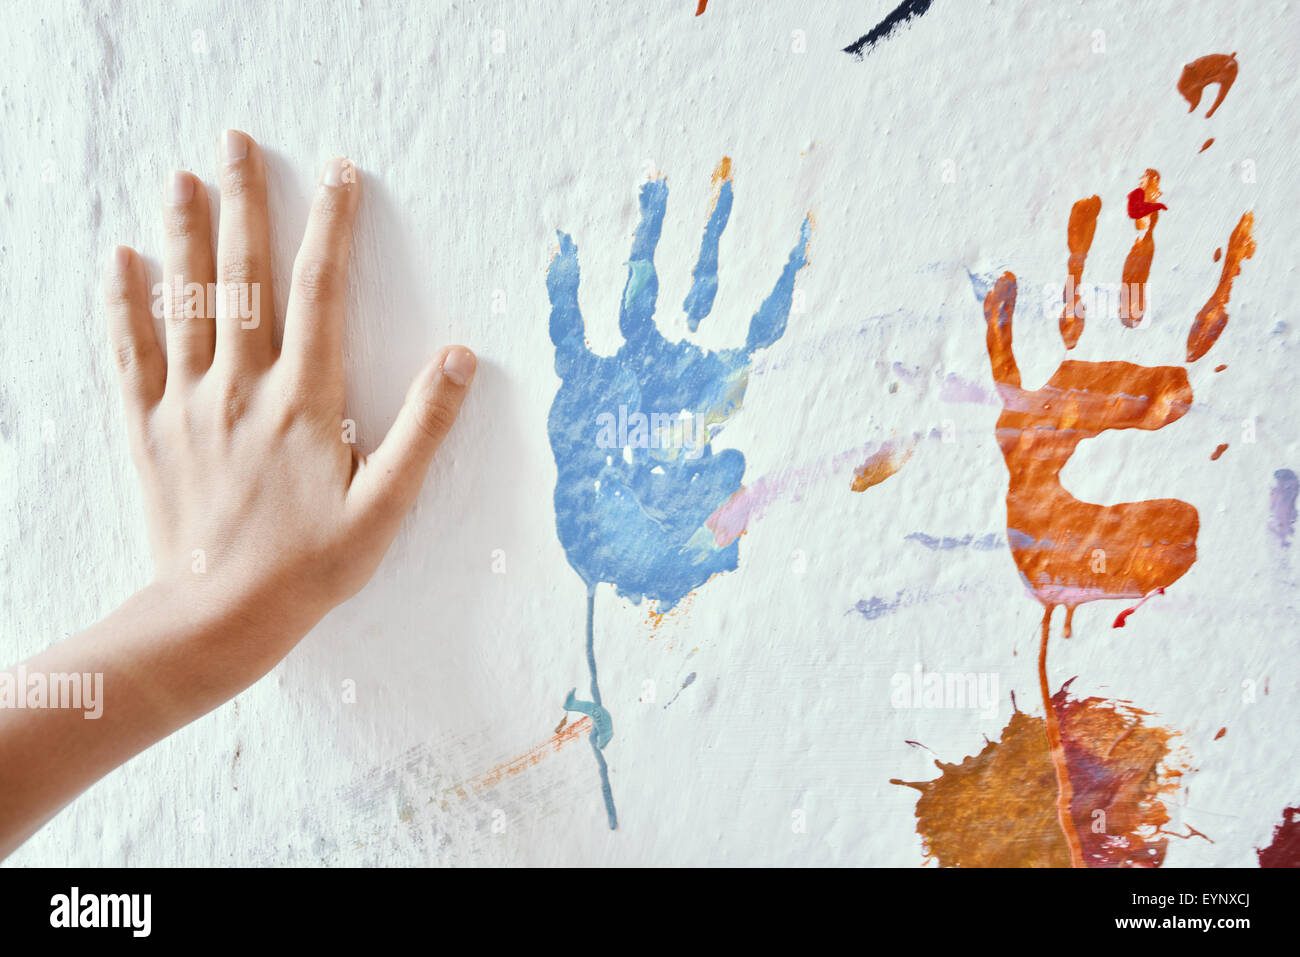 Painting Wall With Hands Stock Photo 85918914 Alamy